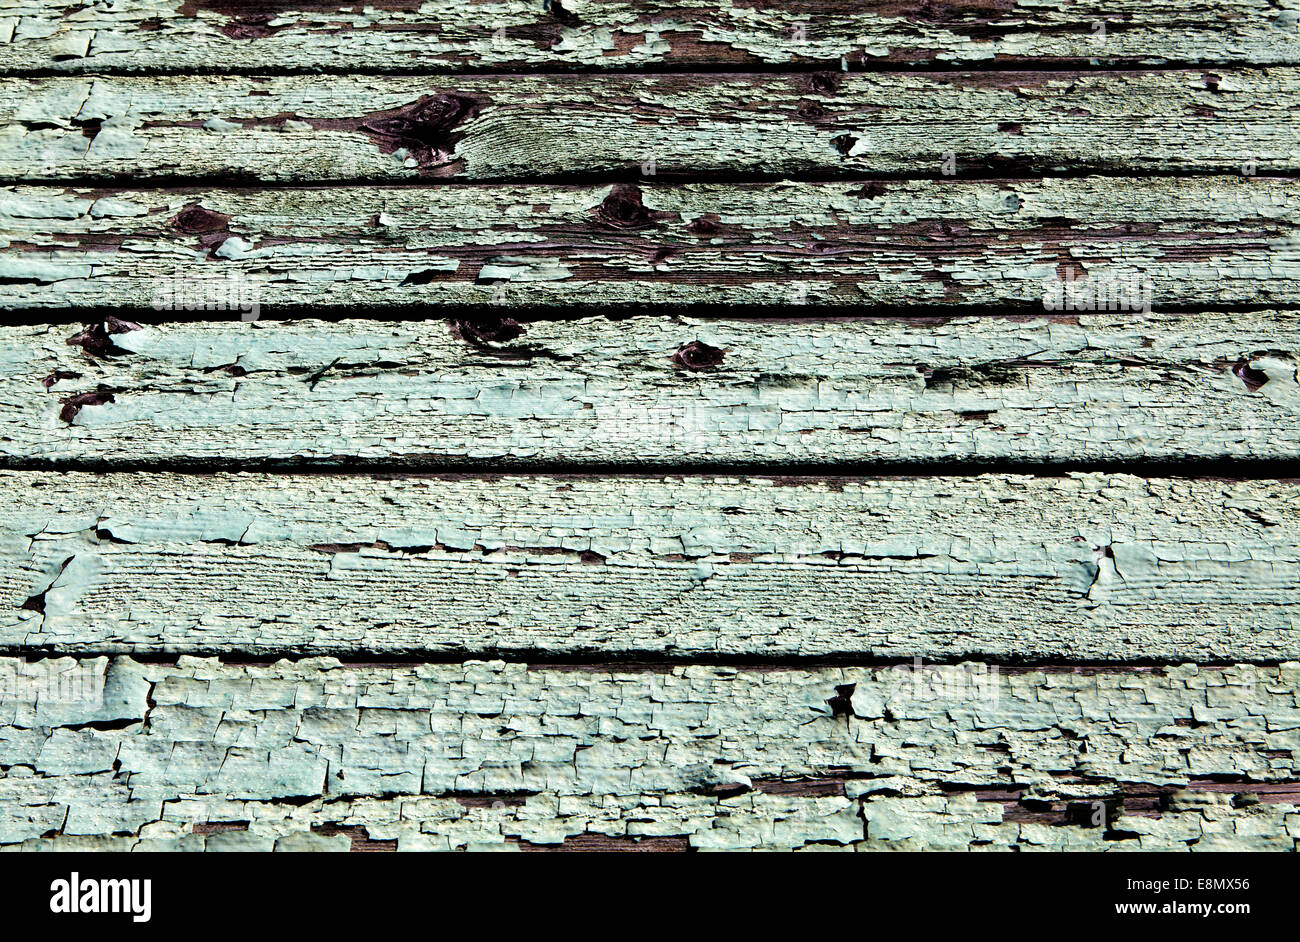 Paint peeling off a wood surface, - Stock Image